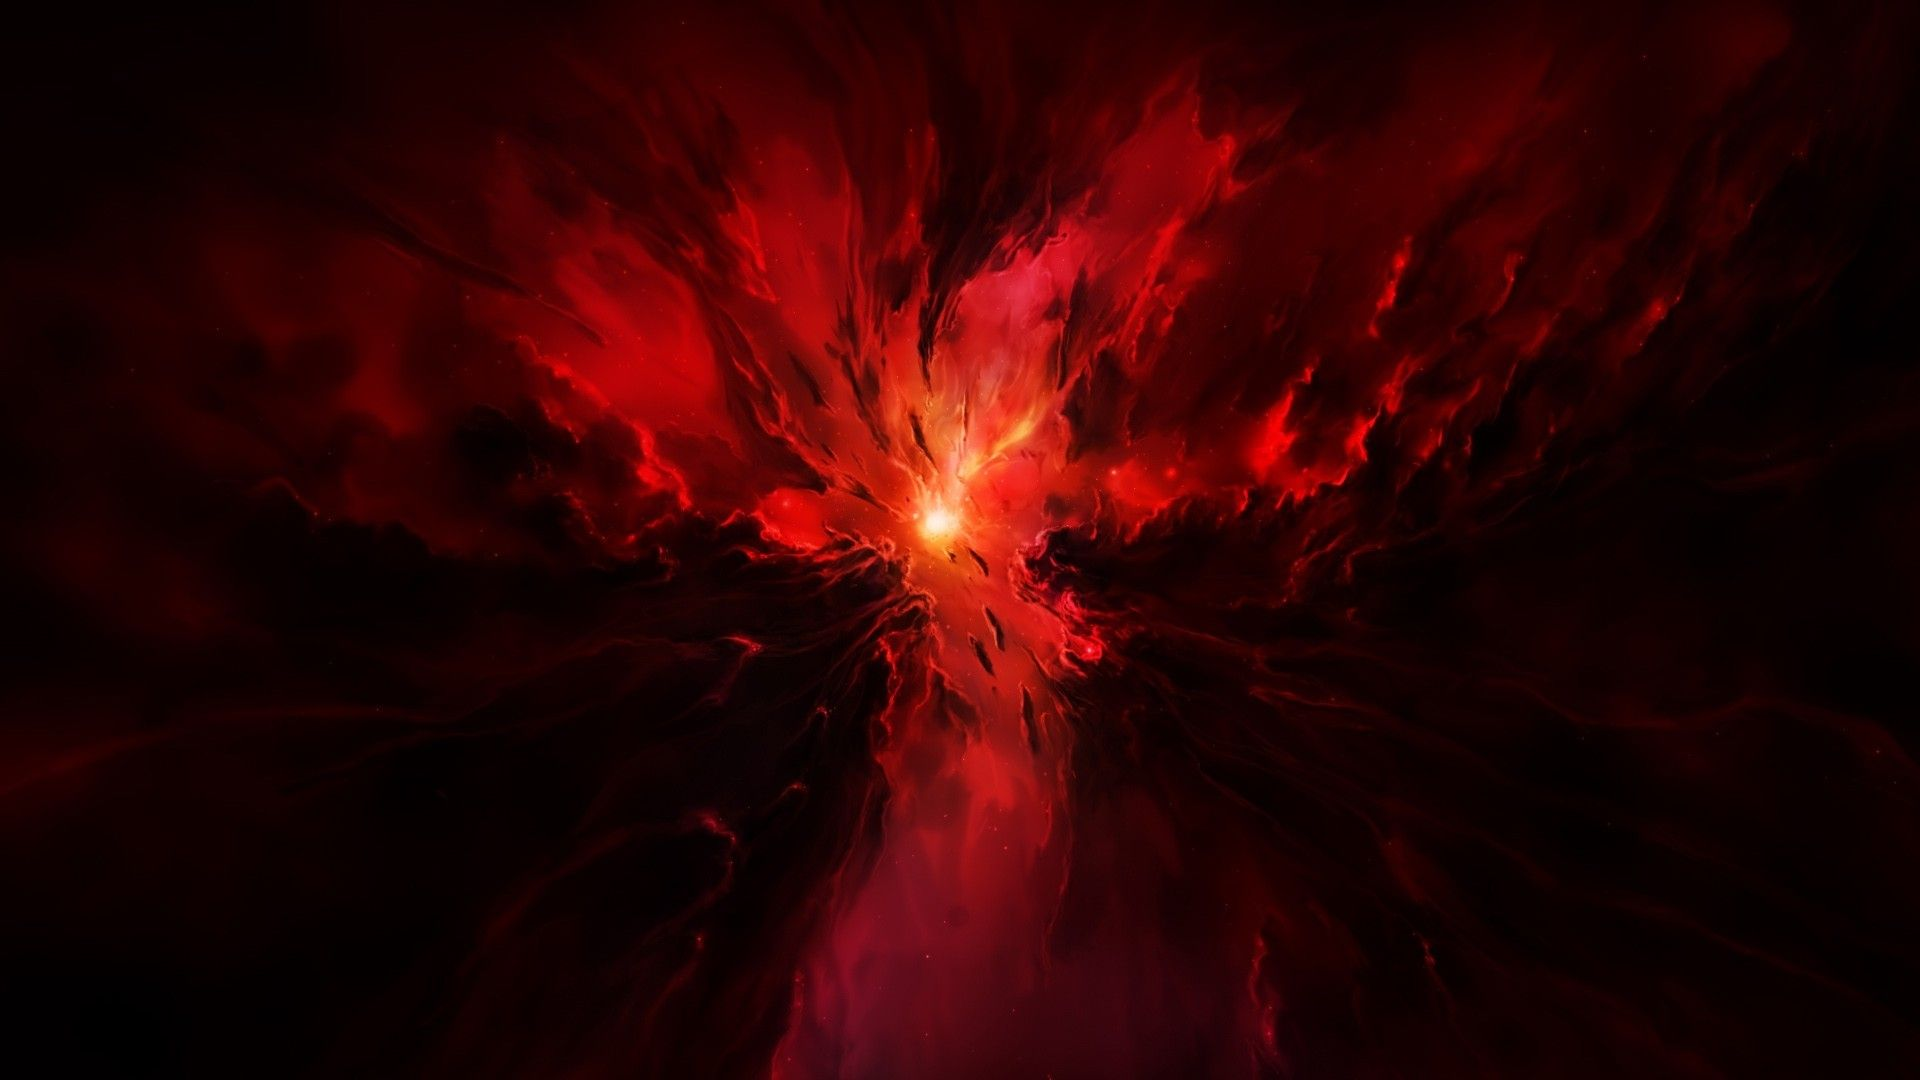 Space Wallpaper 1920X1080 Red Hd Cool 7 HD Wallpapers